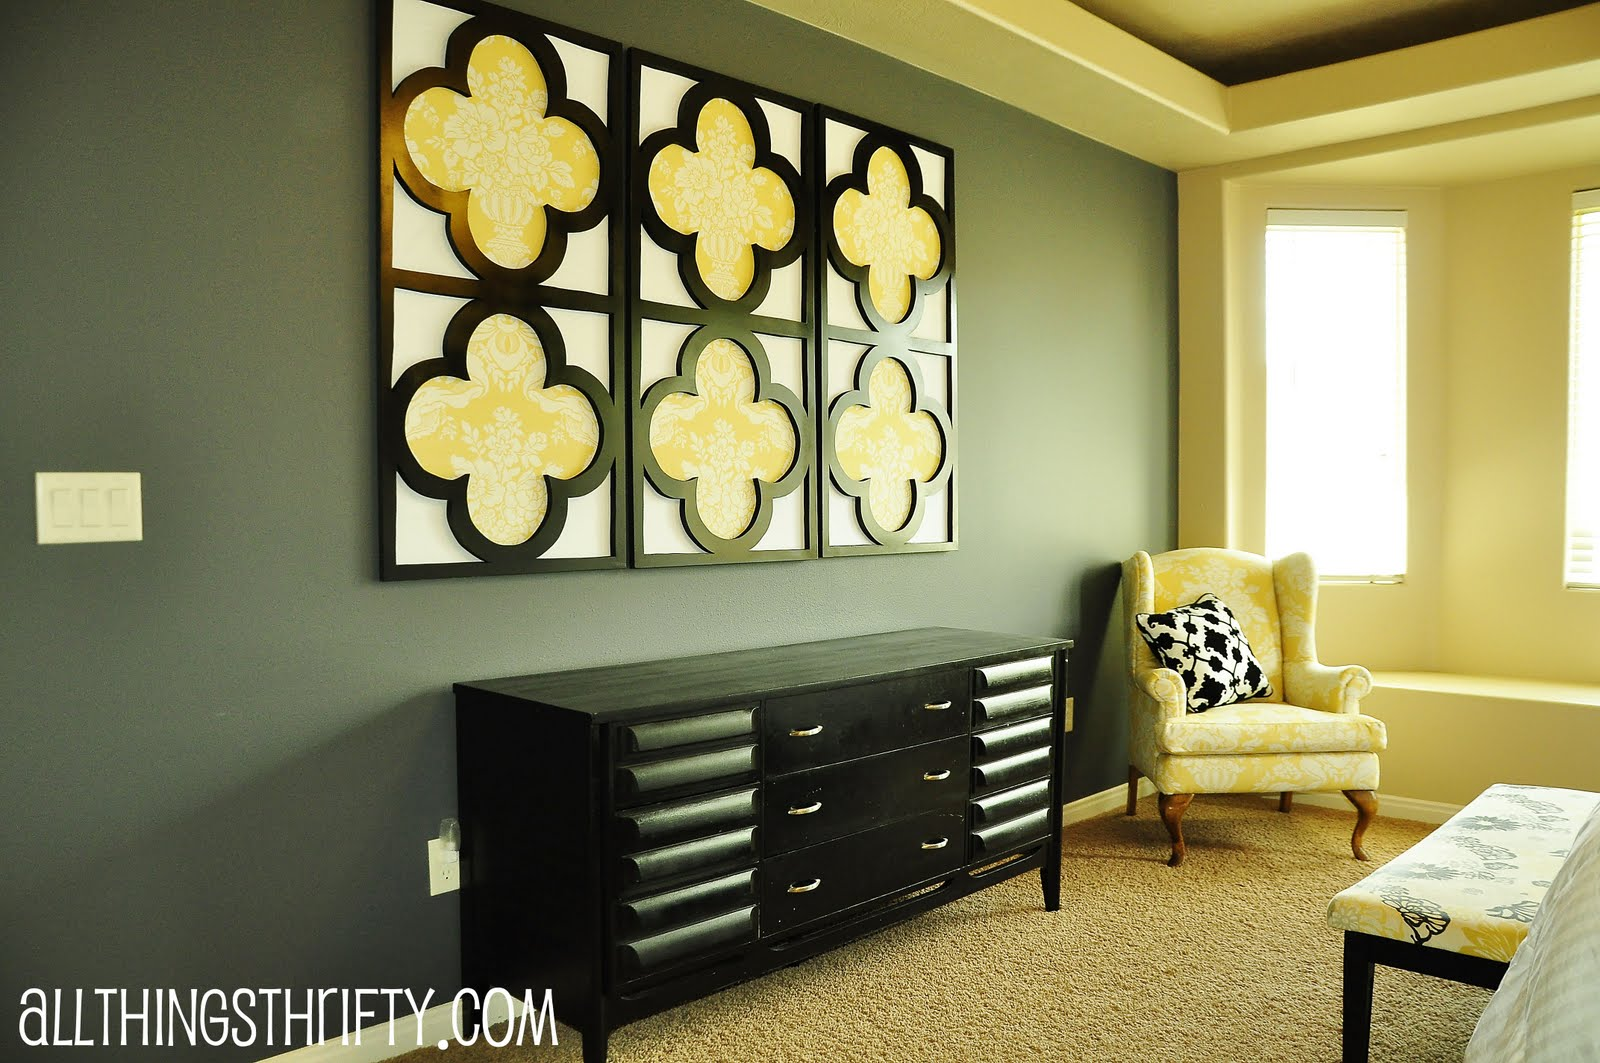 Diy Wall Art Big : Tutorial quatrefoil diy decorative wall art